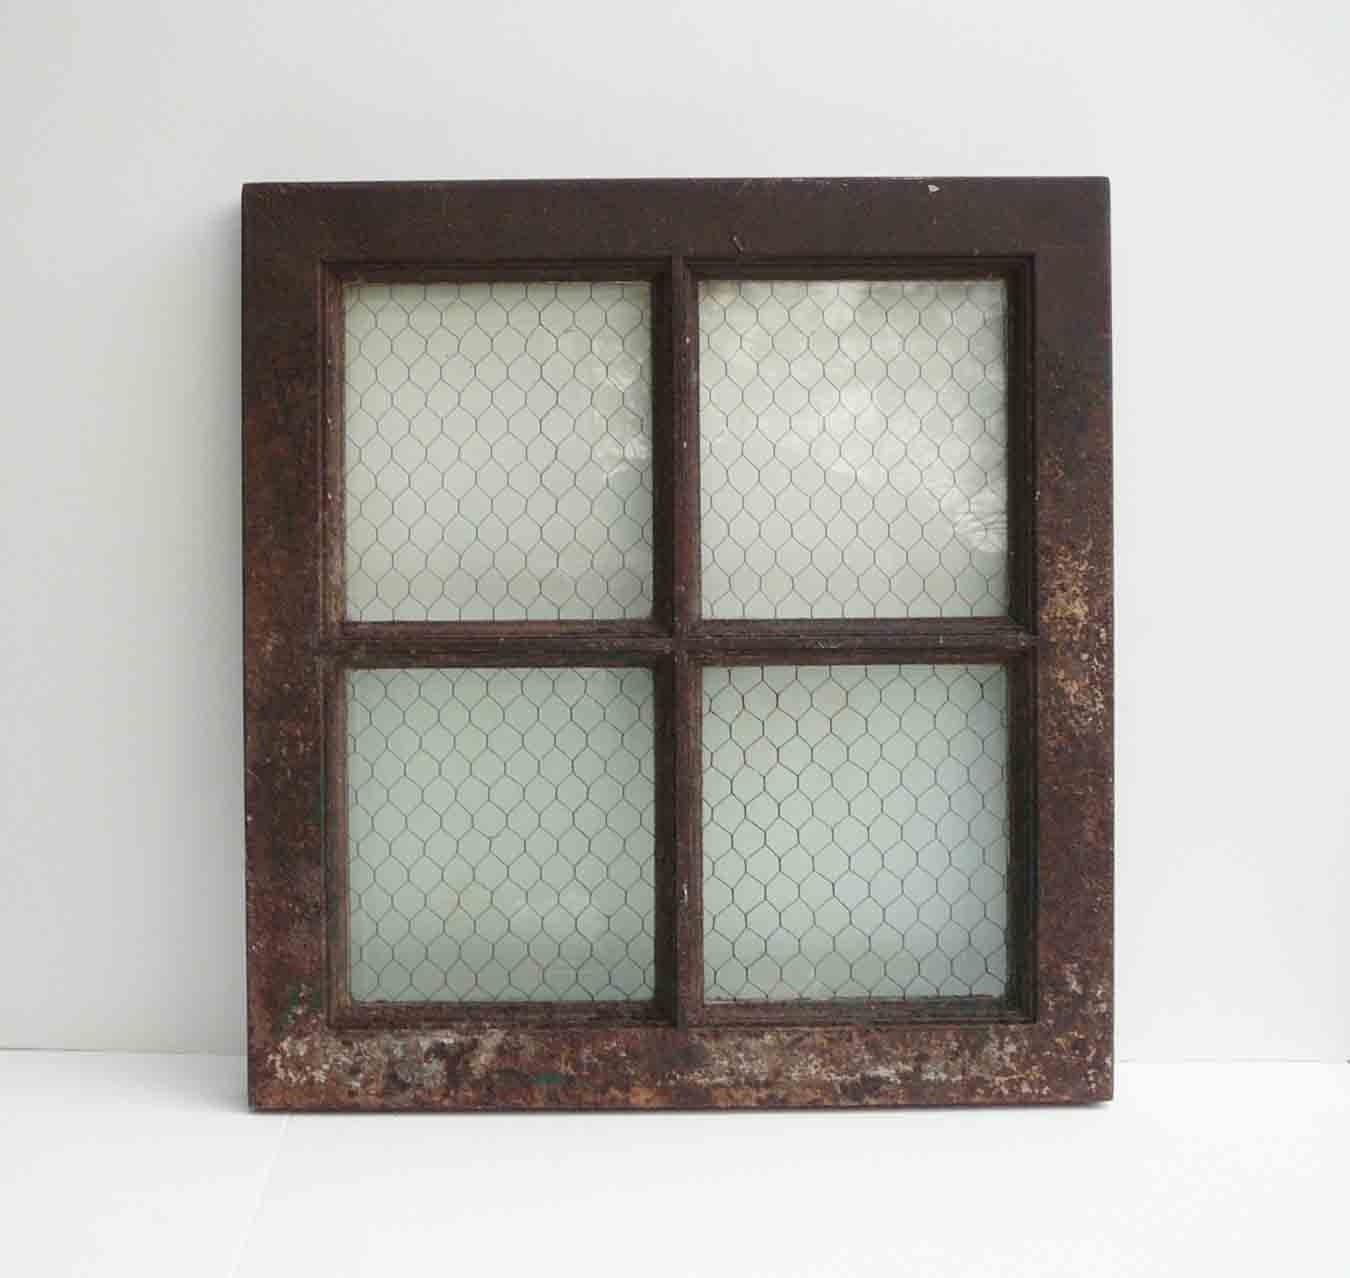 Double Rustic Windows : Vintage metal window chicken wire glass salvage rustic heavy